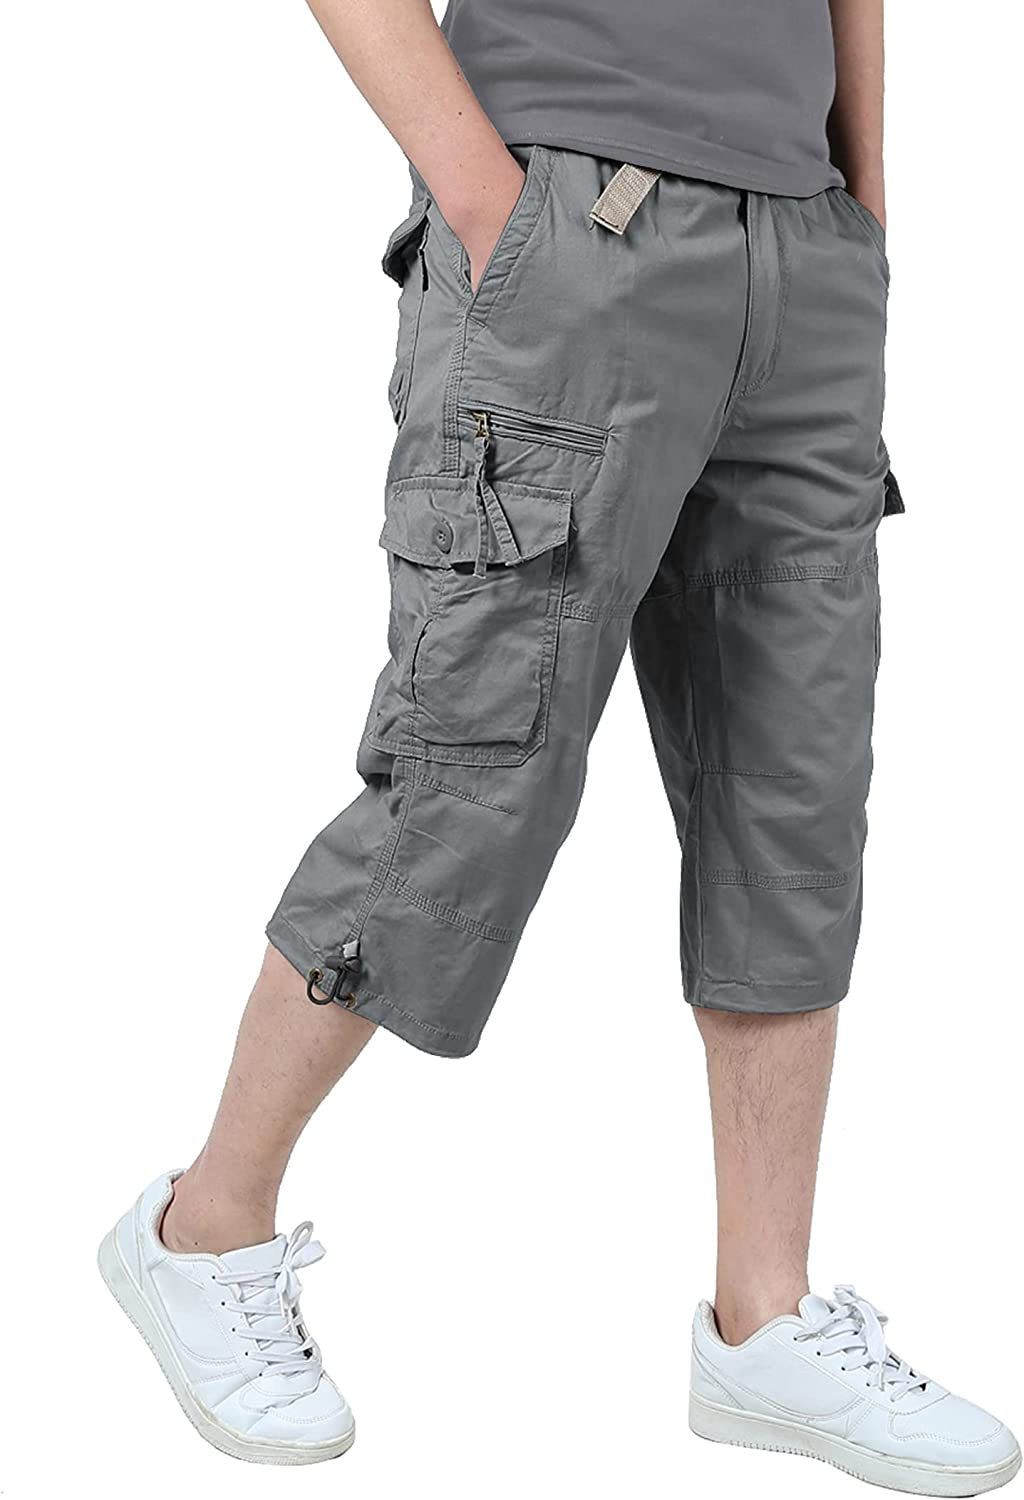 Relaude Fitness Men's 3/4 Long Cargo Shorts Loose Fit Elastic Waist Below Knee Work Tactical Shorts with Multi-Pockets